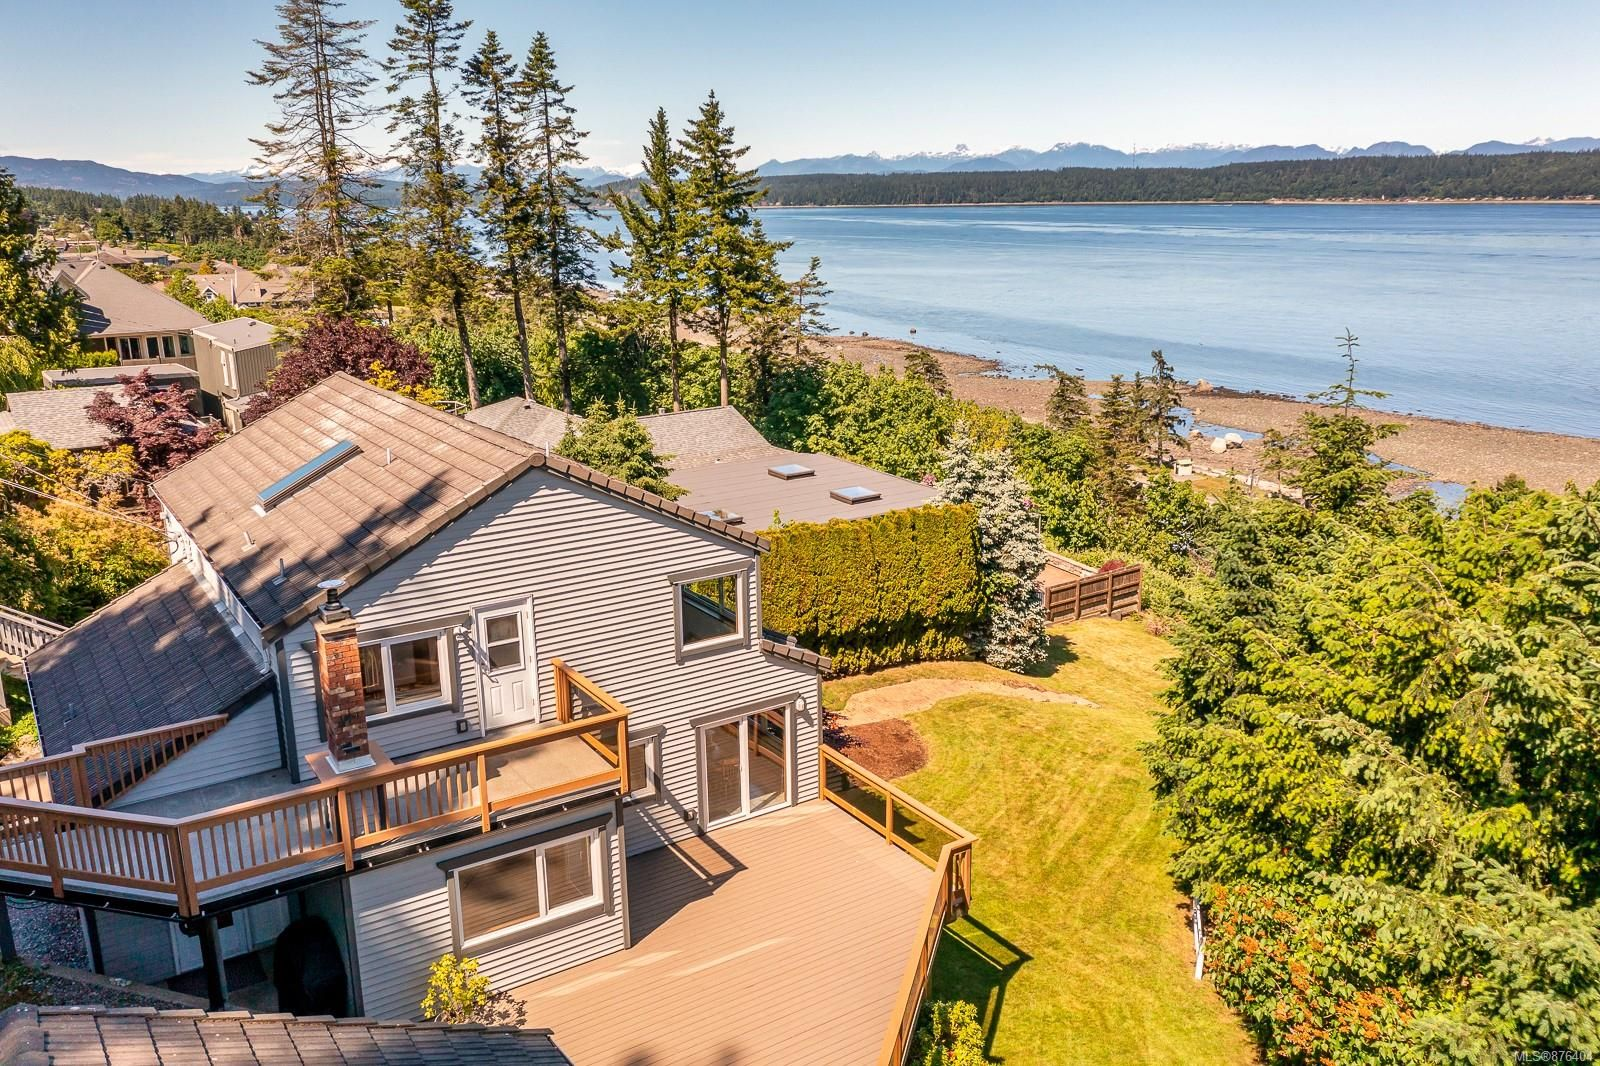 Main Photo: 699 Ash St in : CR Campbell River Central House for sale (Campbell River)  : MLS®# 876404